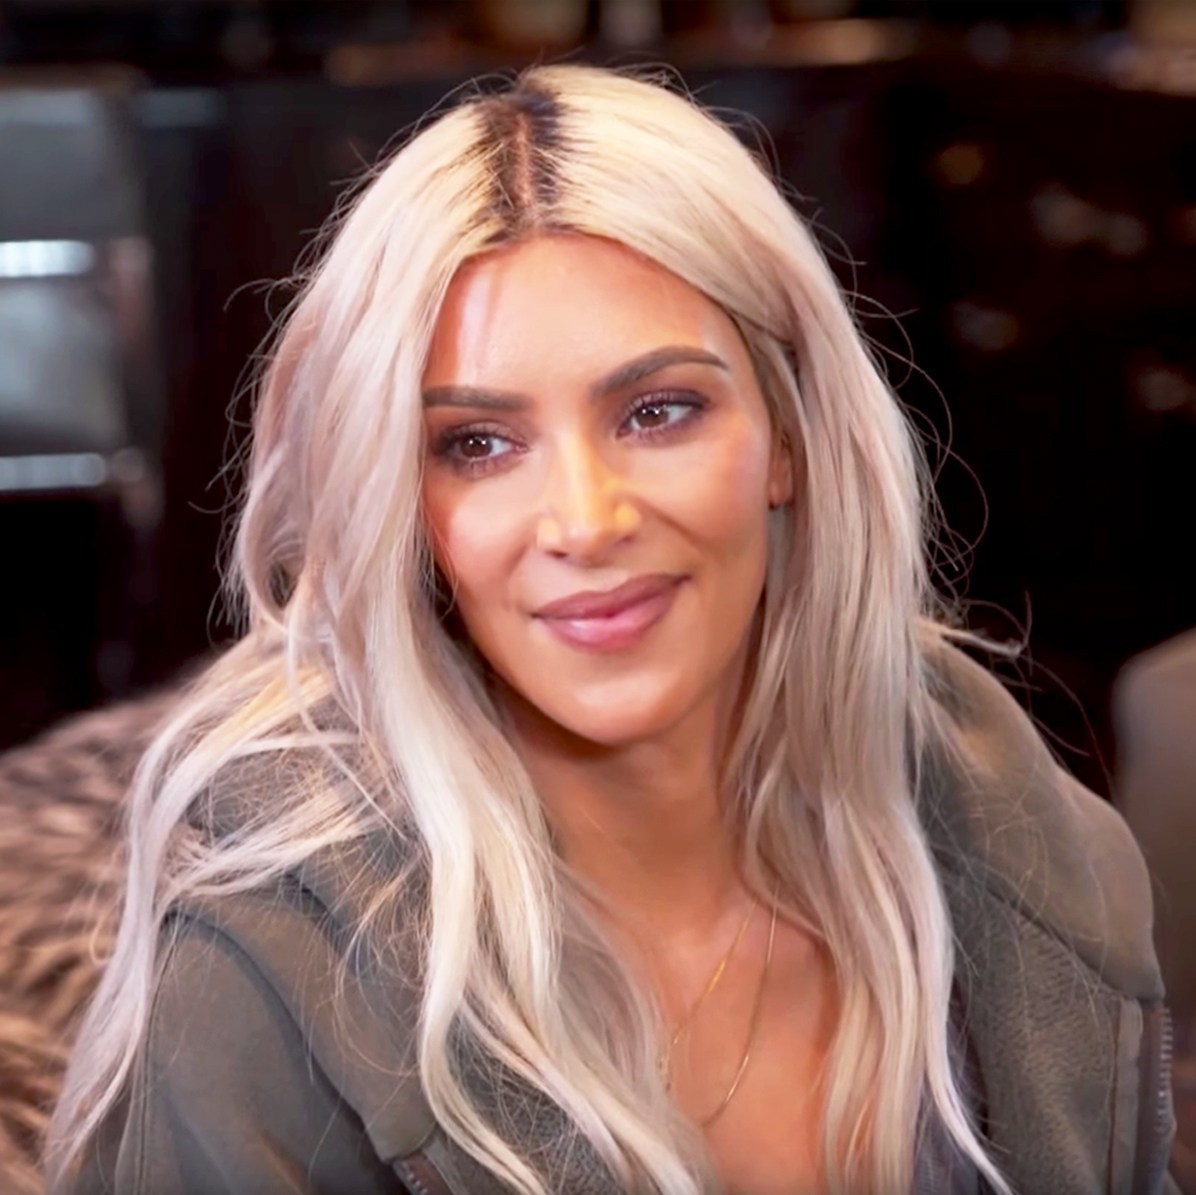 Kim Kardashian on 'Keeping Up with the Kardashians'